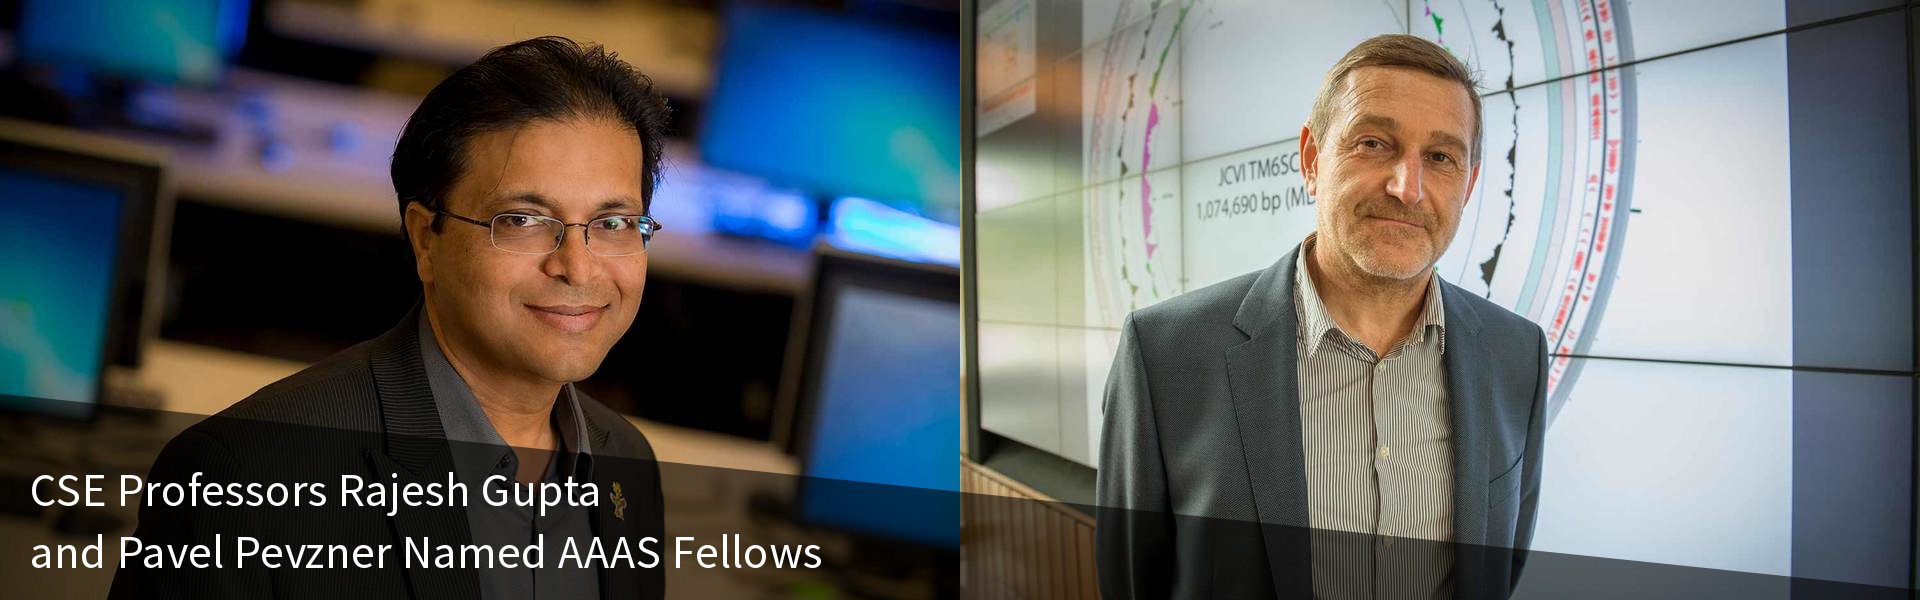 CSE Professors Rajesh Gupta and Pavel Pevzner Named AAAS Fellows